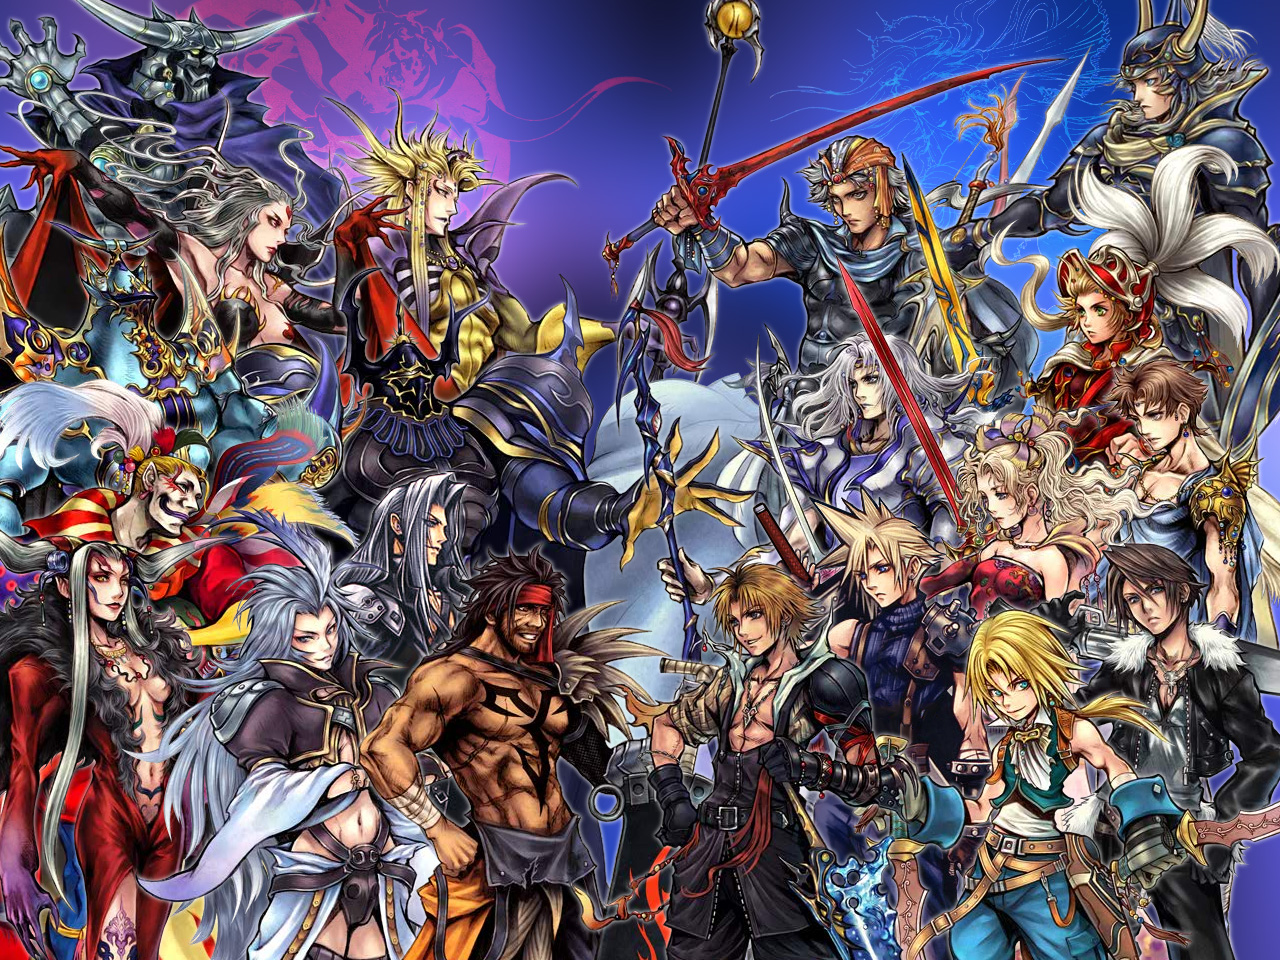 Final-Fantasy-Dissidia-vers-une-suite0001